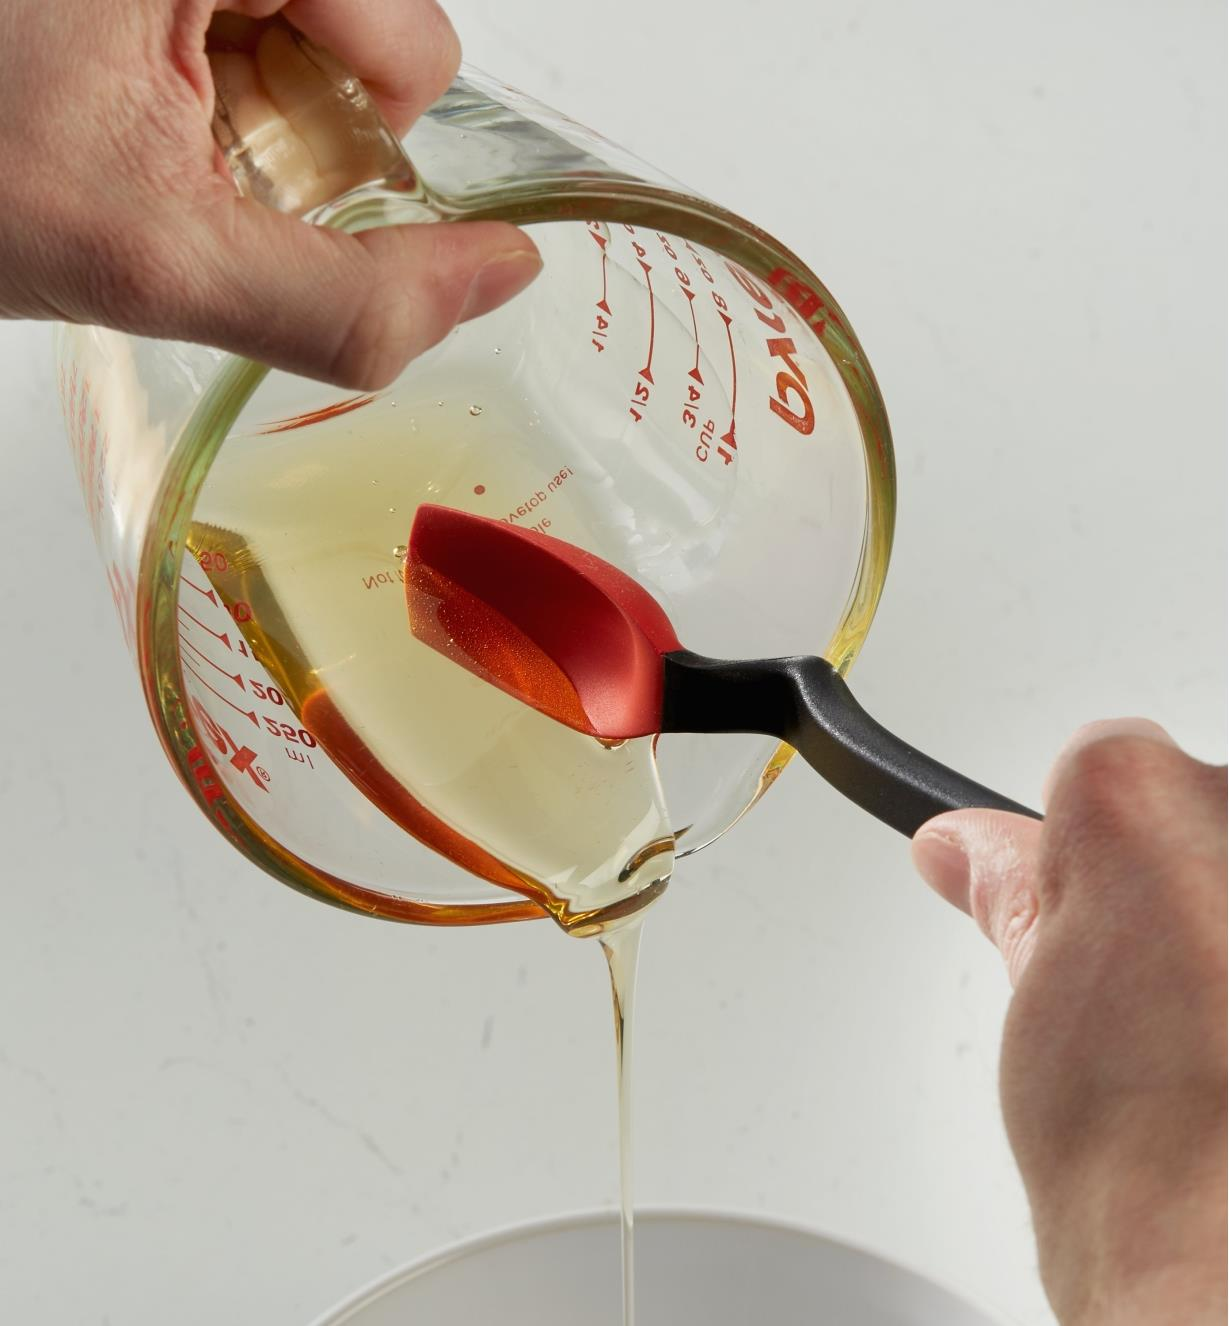 The mini spoon-spatula used to scrape liquid honey from a measuring cup